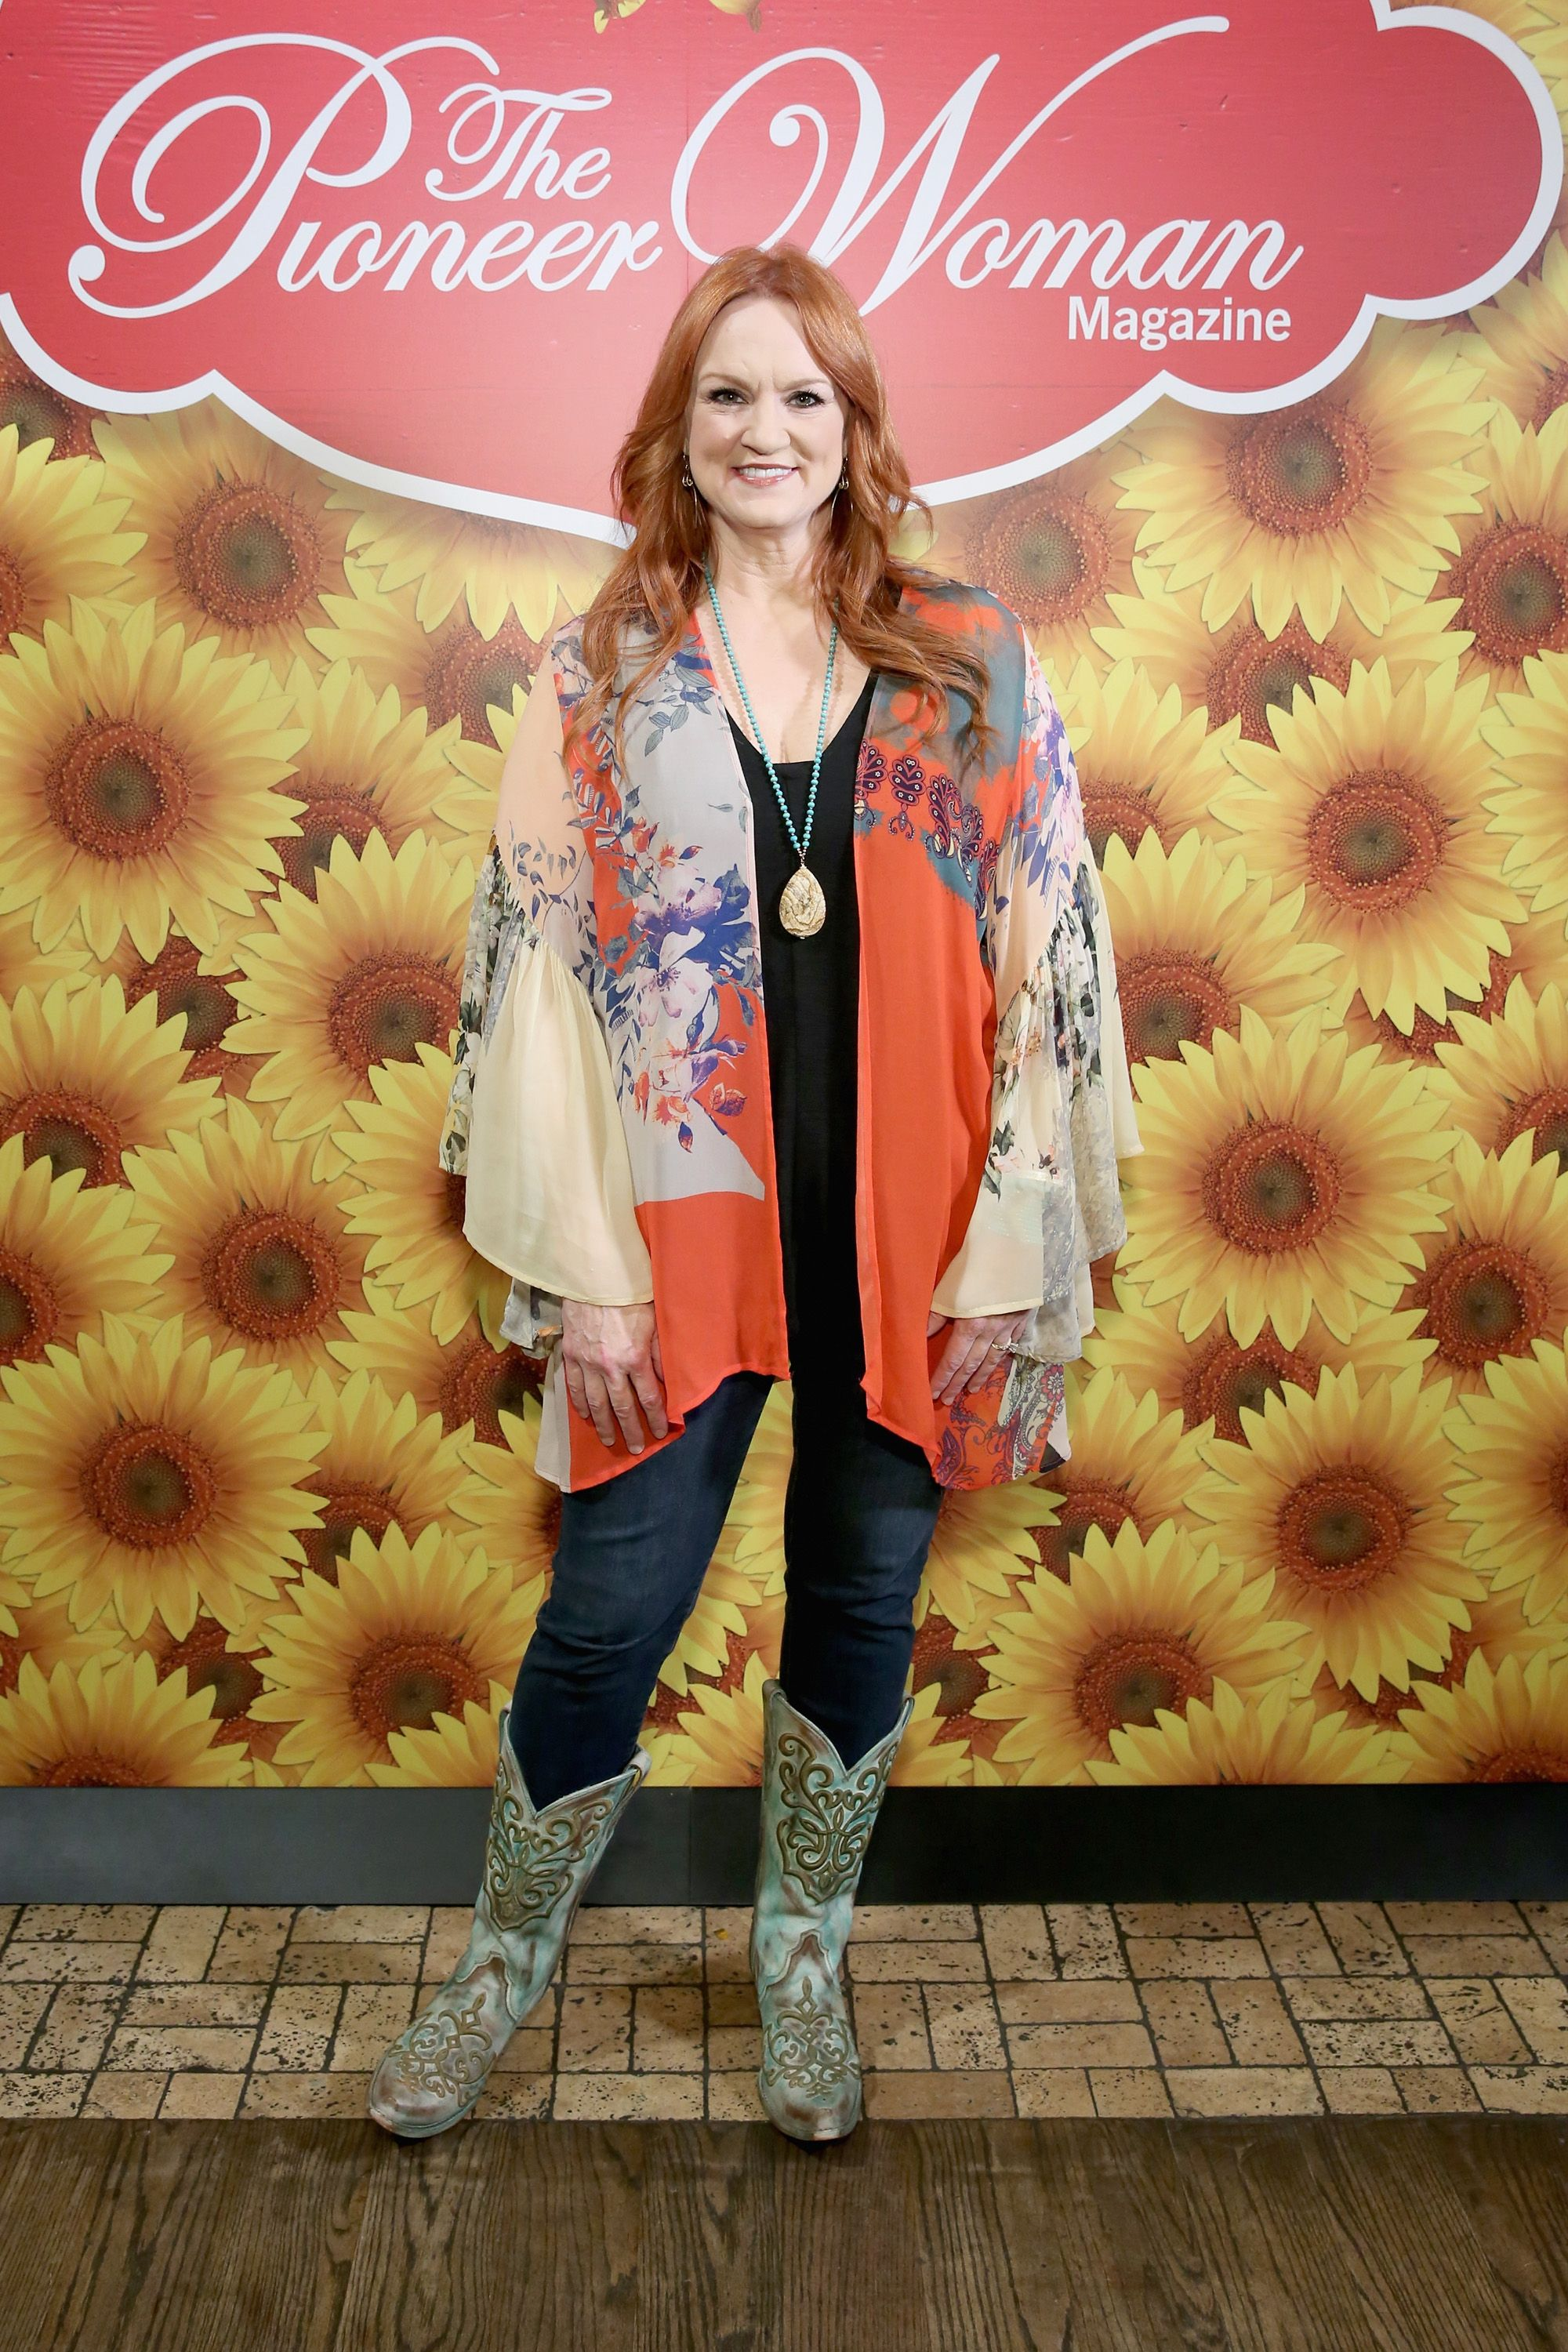 """Ree Drummond at """"The Pioneer Woman Magazine Celebration with Ree Drummond"""" on June 6, 2017. 